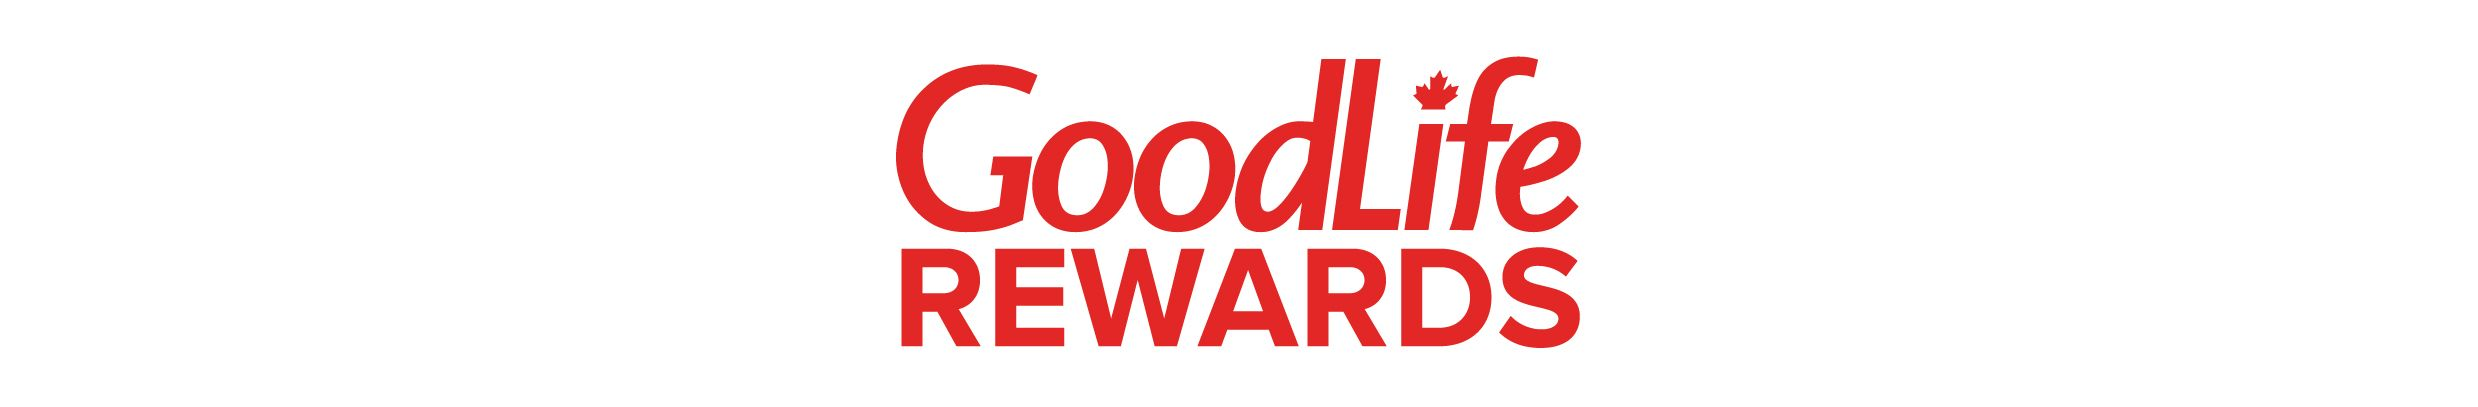 goodlife-rewards-header